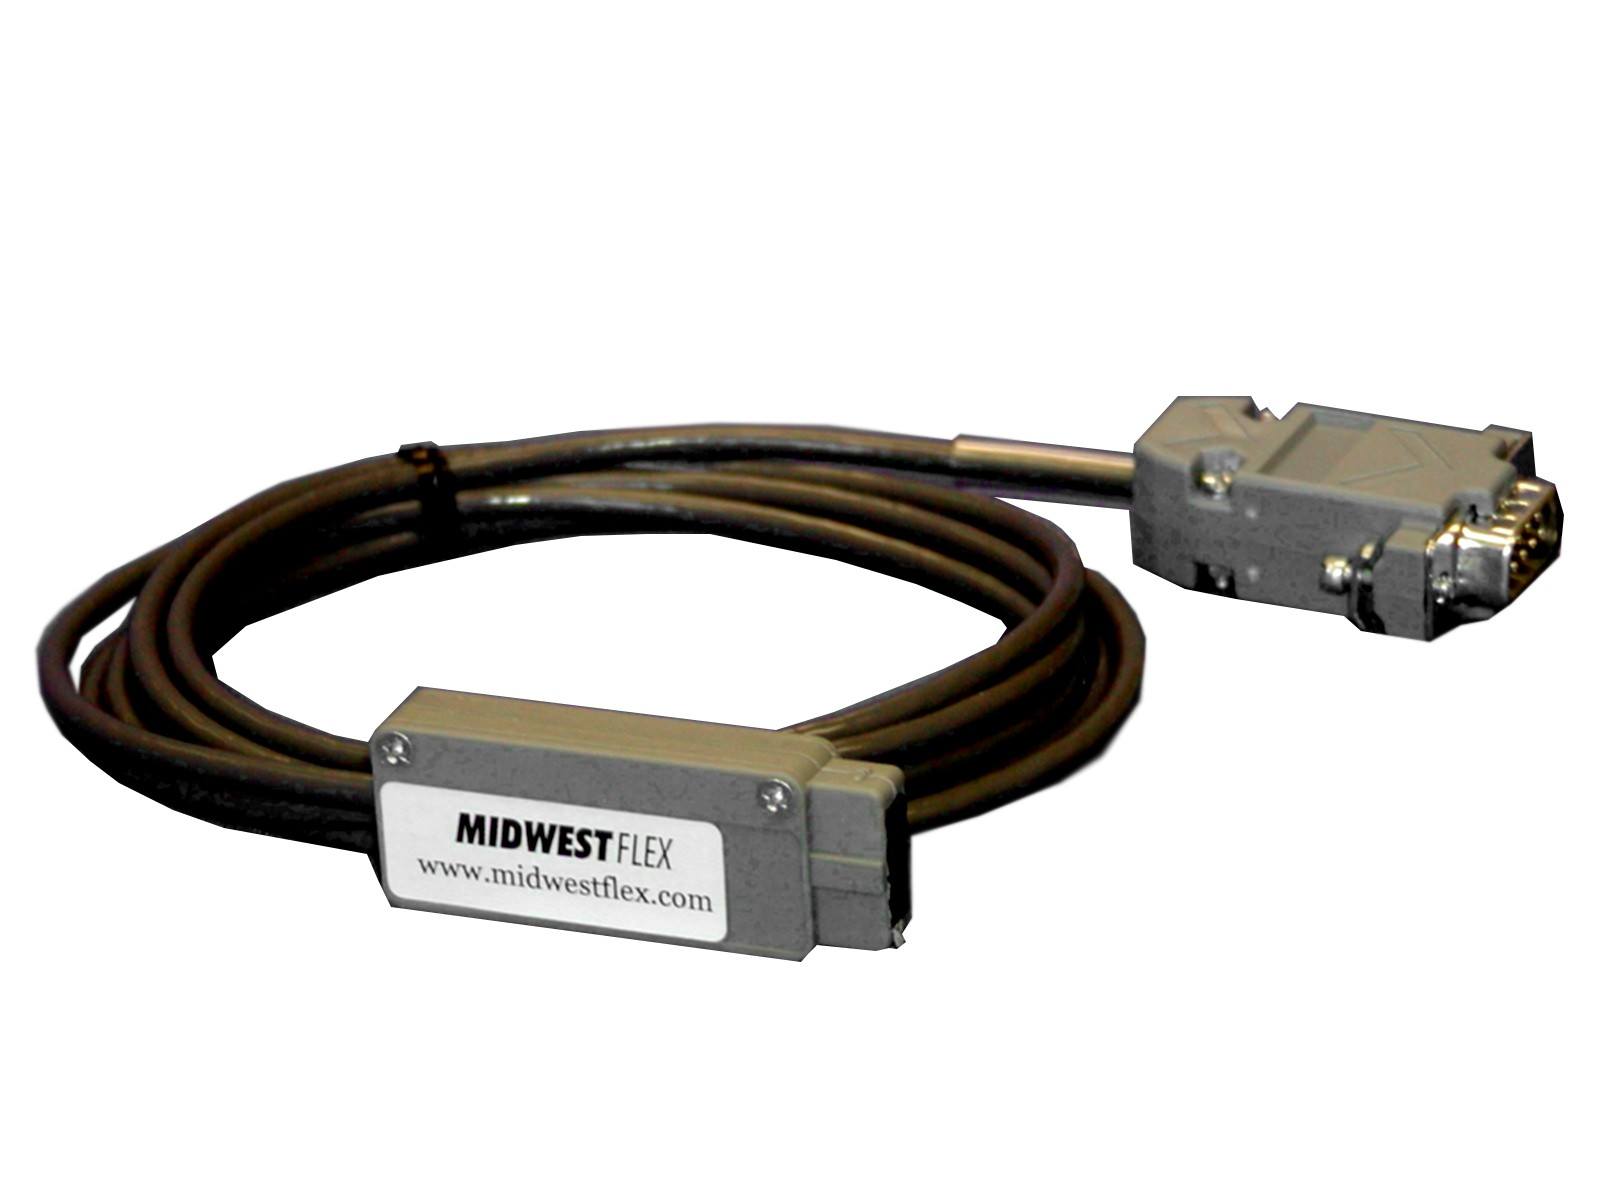 C-96510-06 FlexConnect Beta LaserMike 283 to Digimatic output (6 ft)